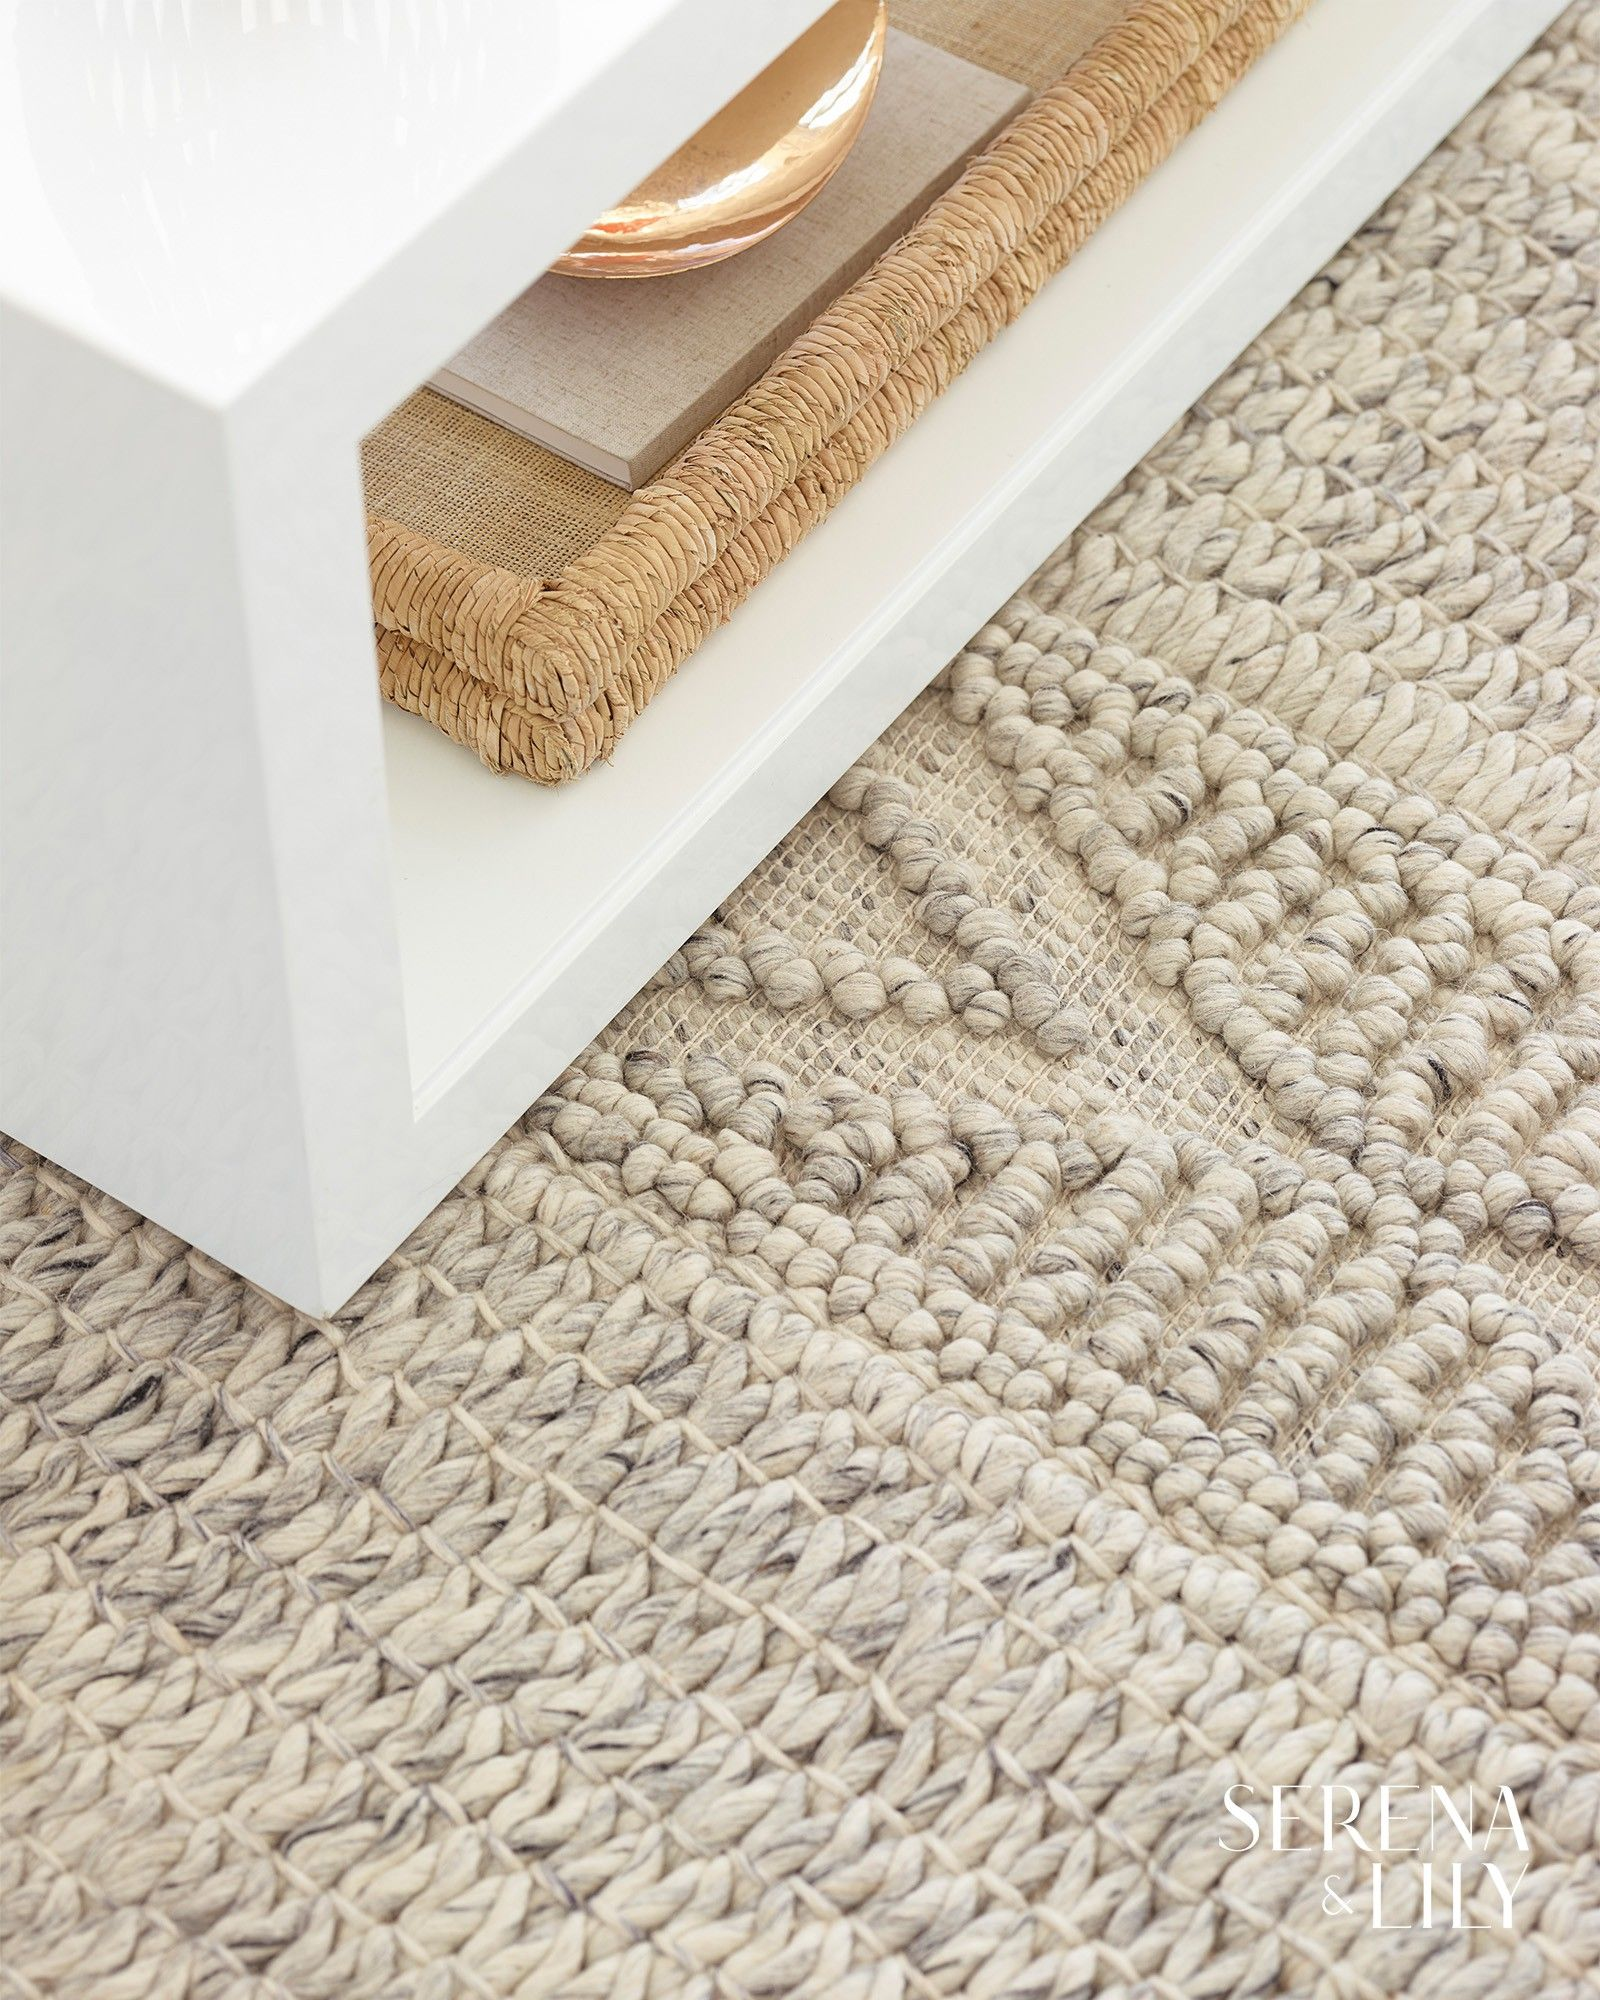 Made Of 100 New Zealand Wool This Gorgeously Neutral Rug Is As Gentle On Your Feet As It Is On Your Eyes Neutral Rugs Wool Rug Rugs